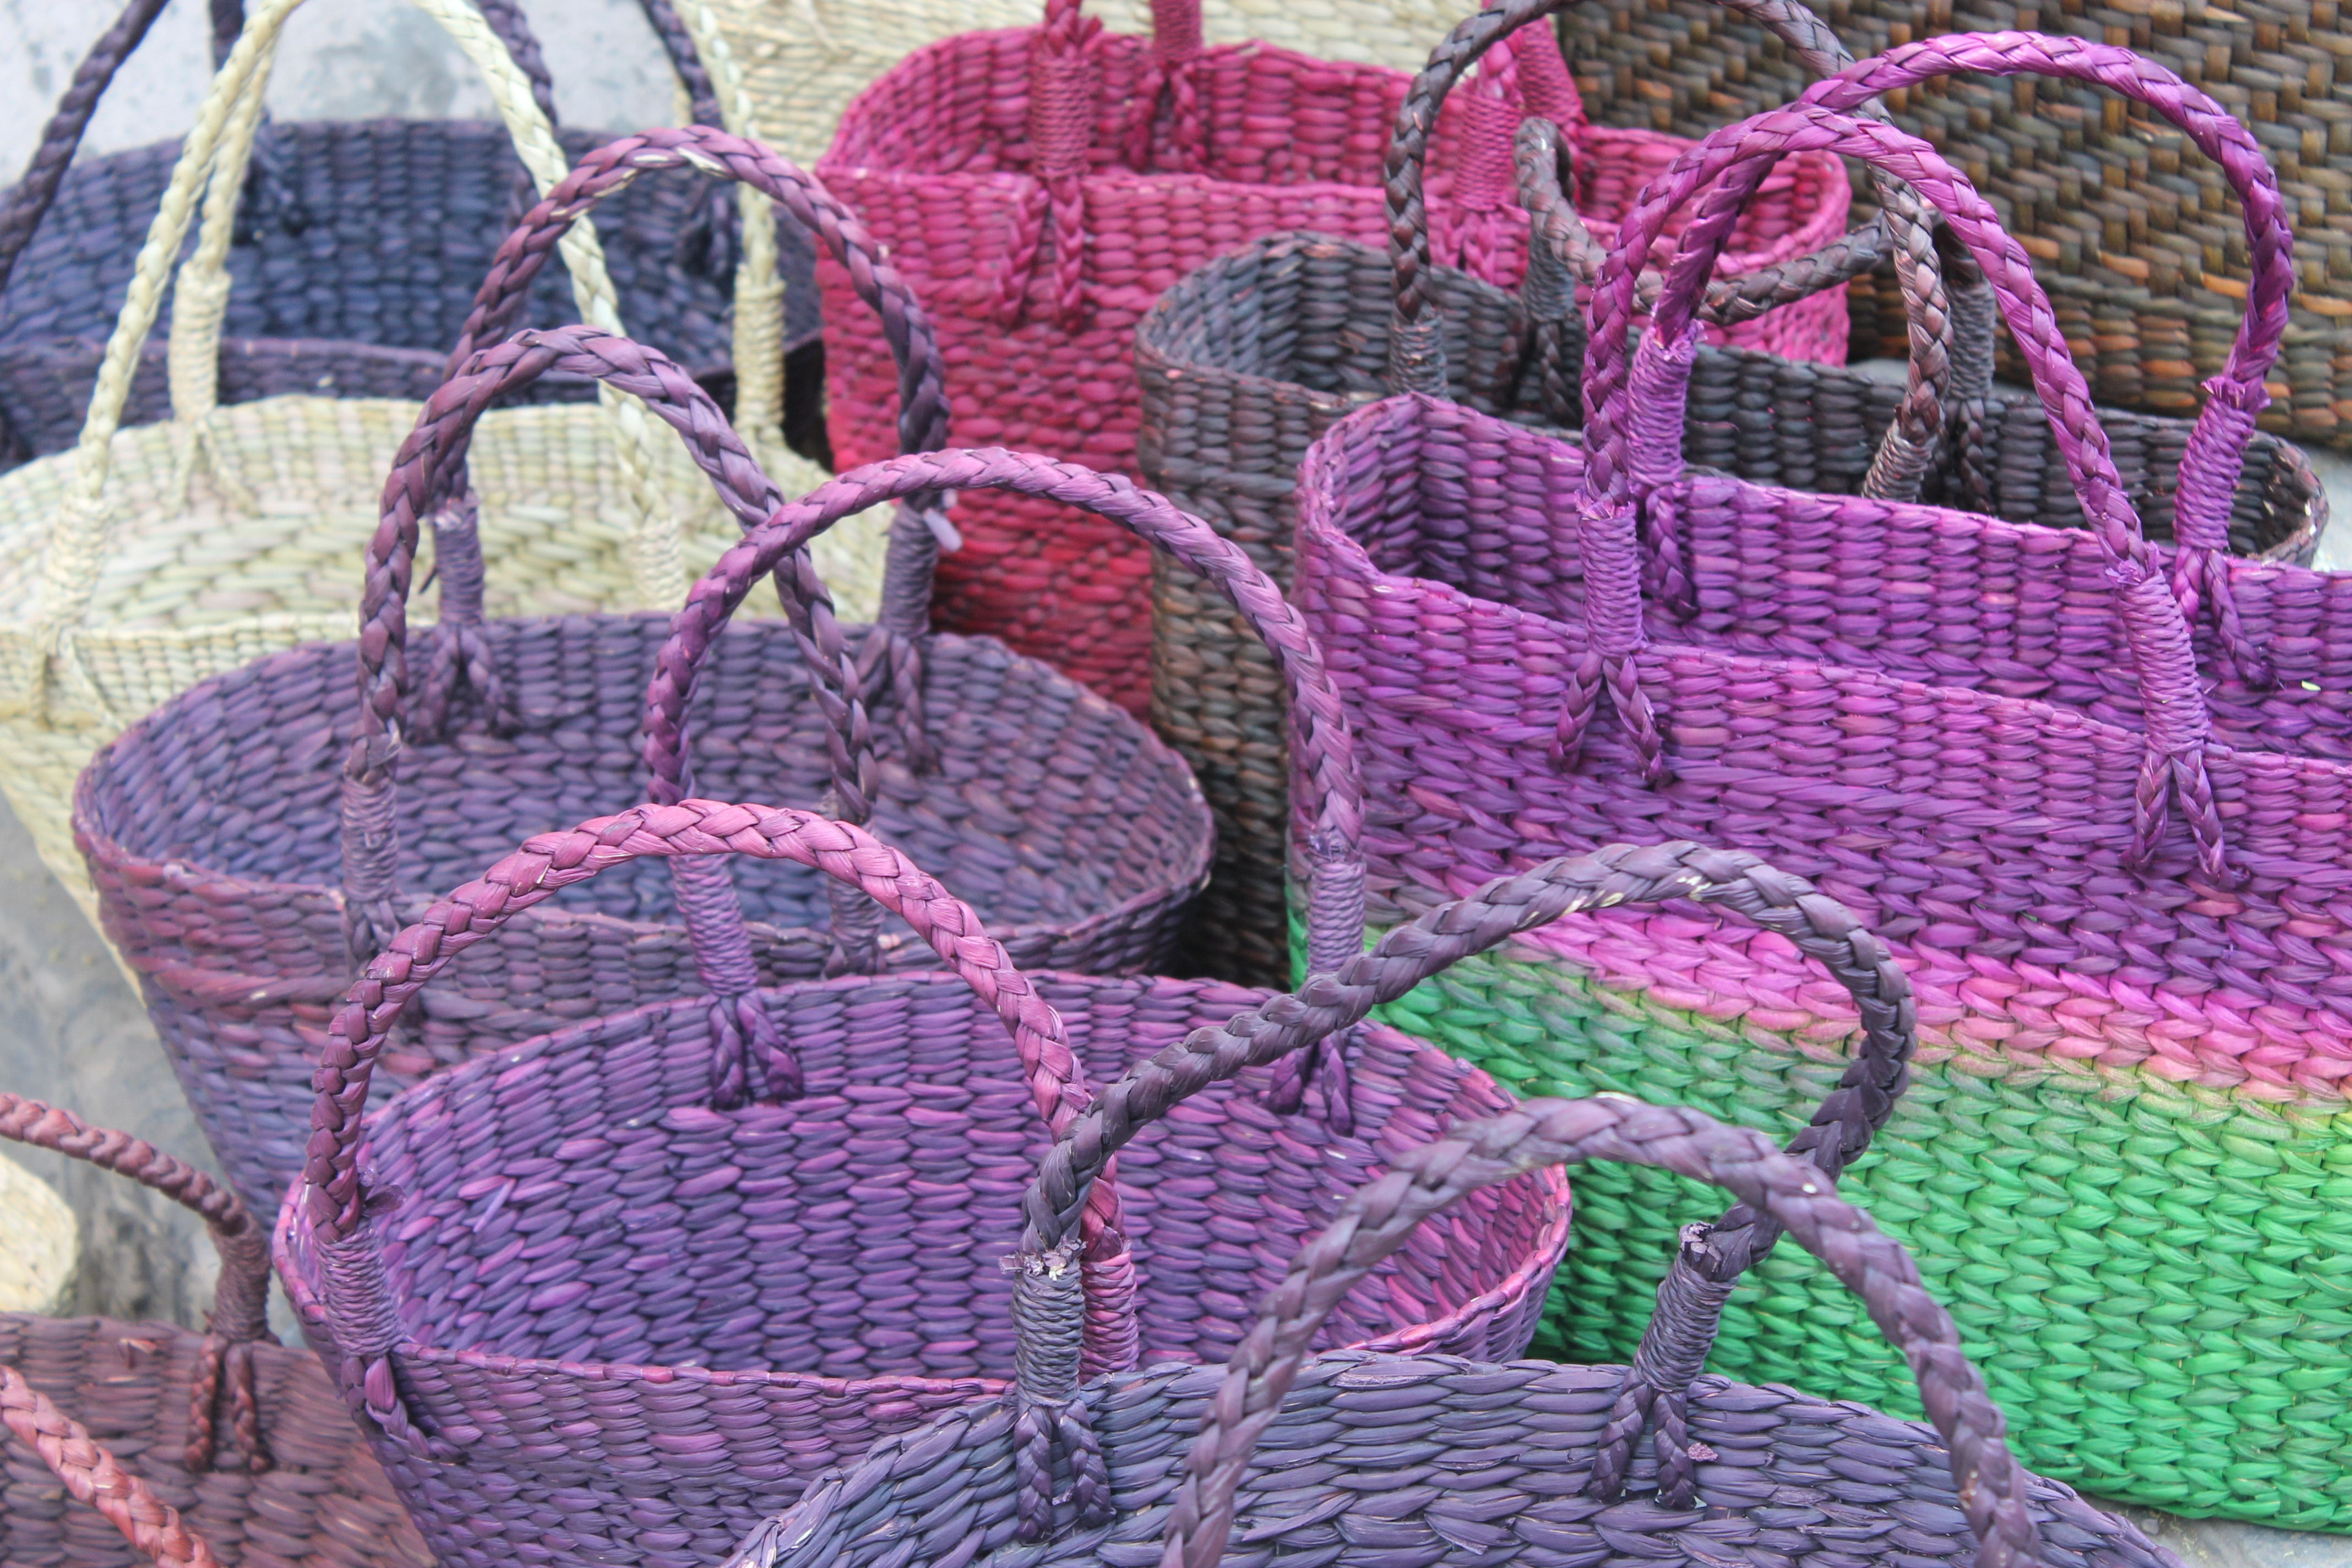 Brightly Colored Baskets For Sale At Dilli Haat Market In New Delhi, India.